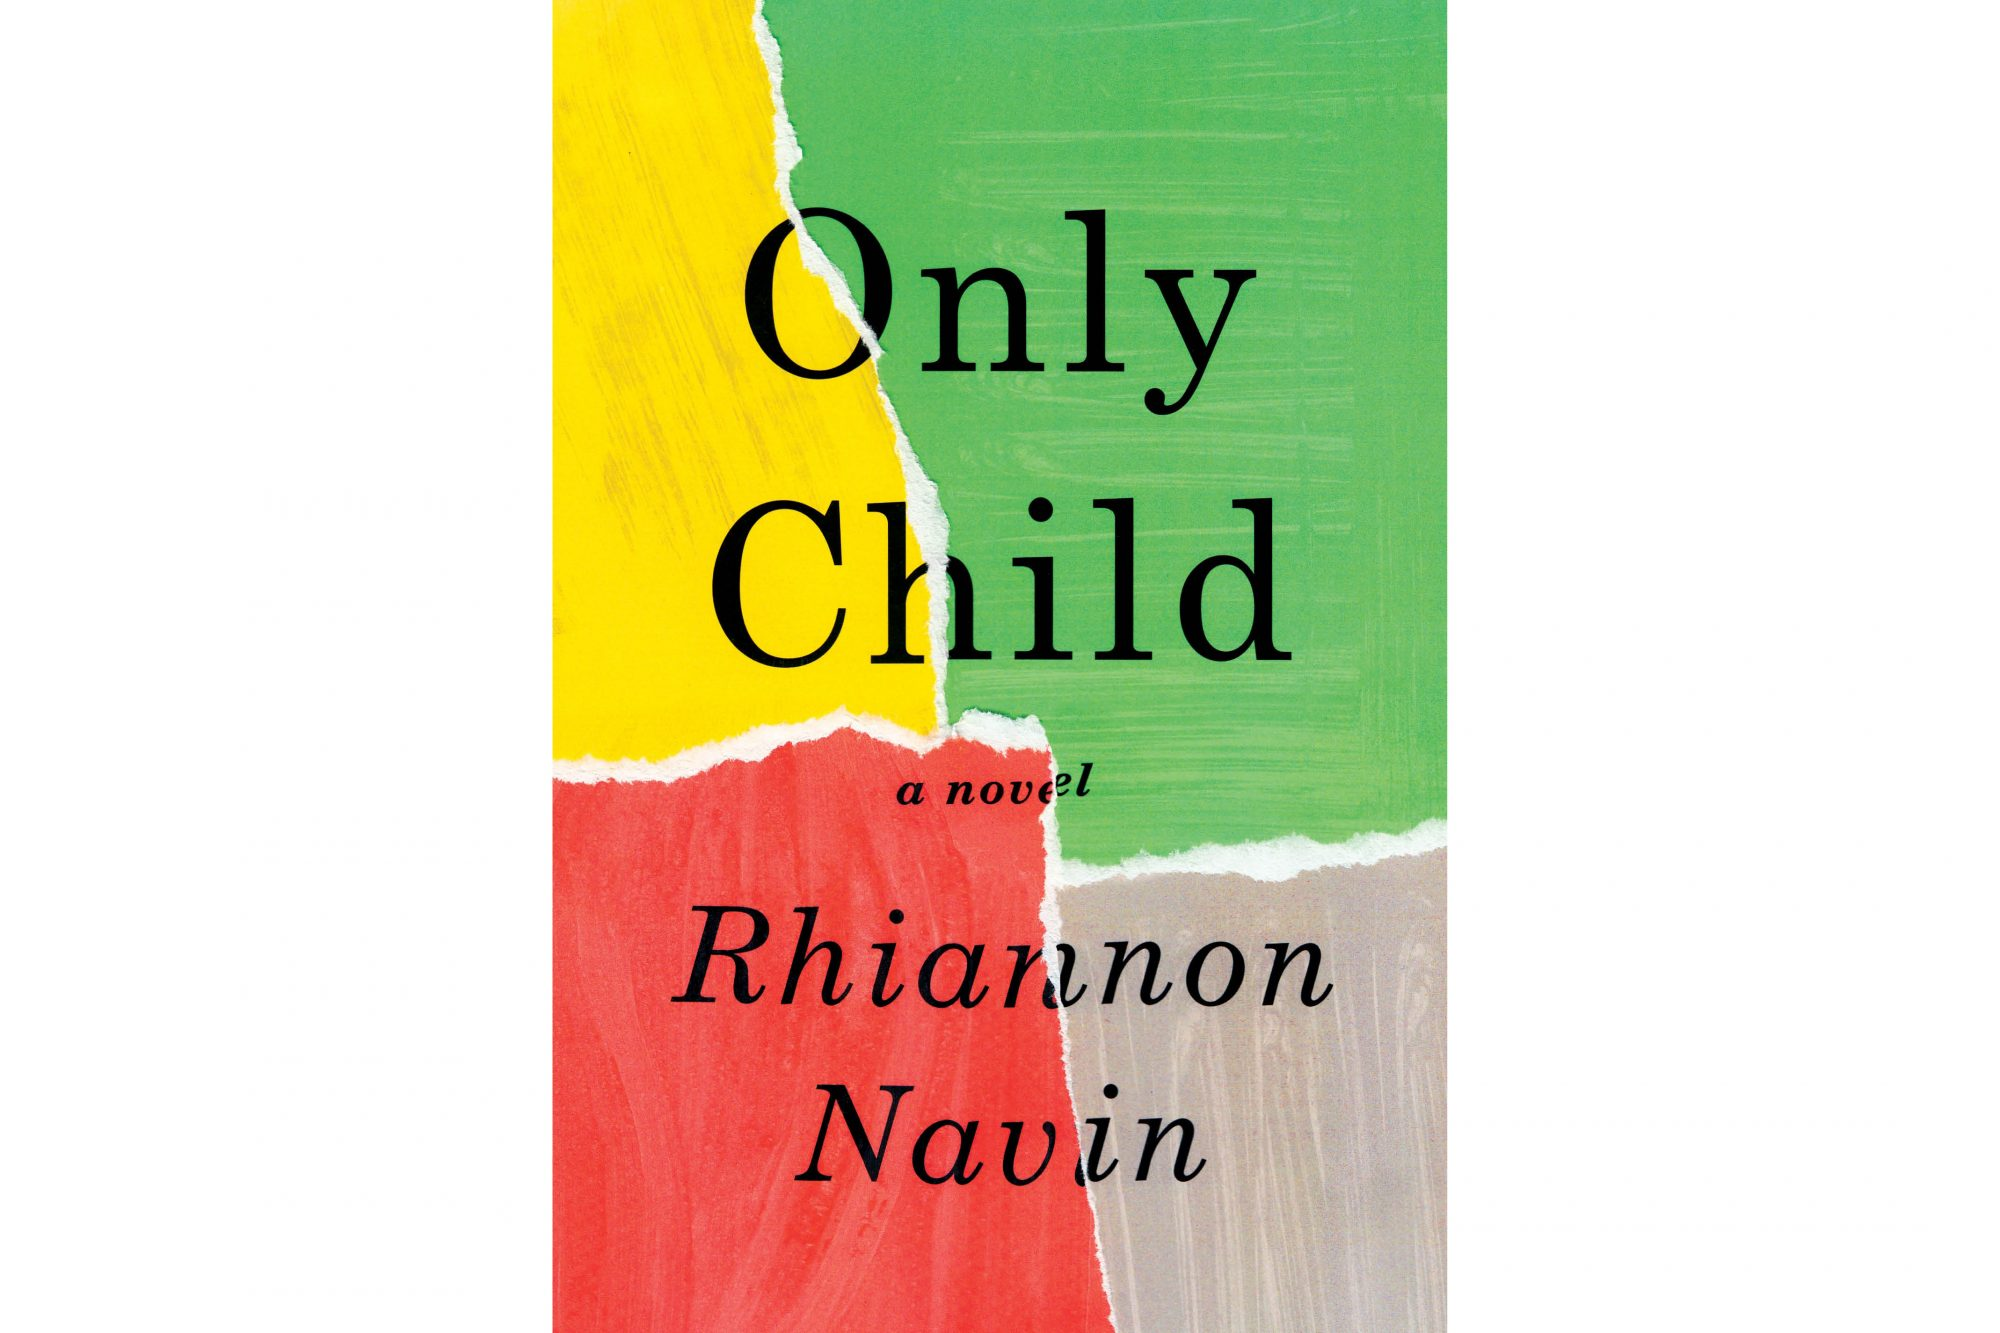 Only Child, by Rhiannon Navin